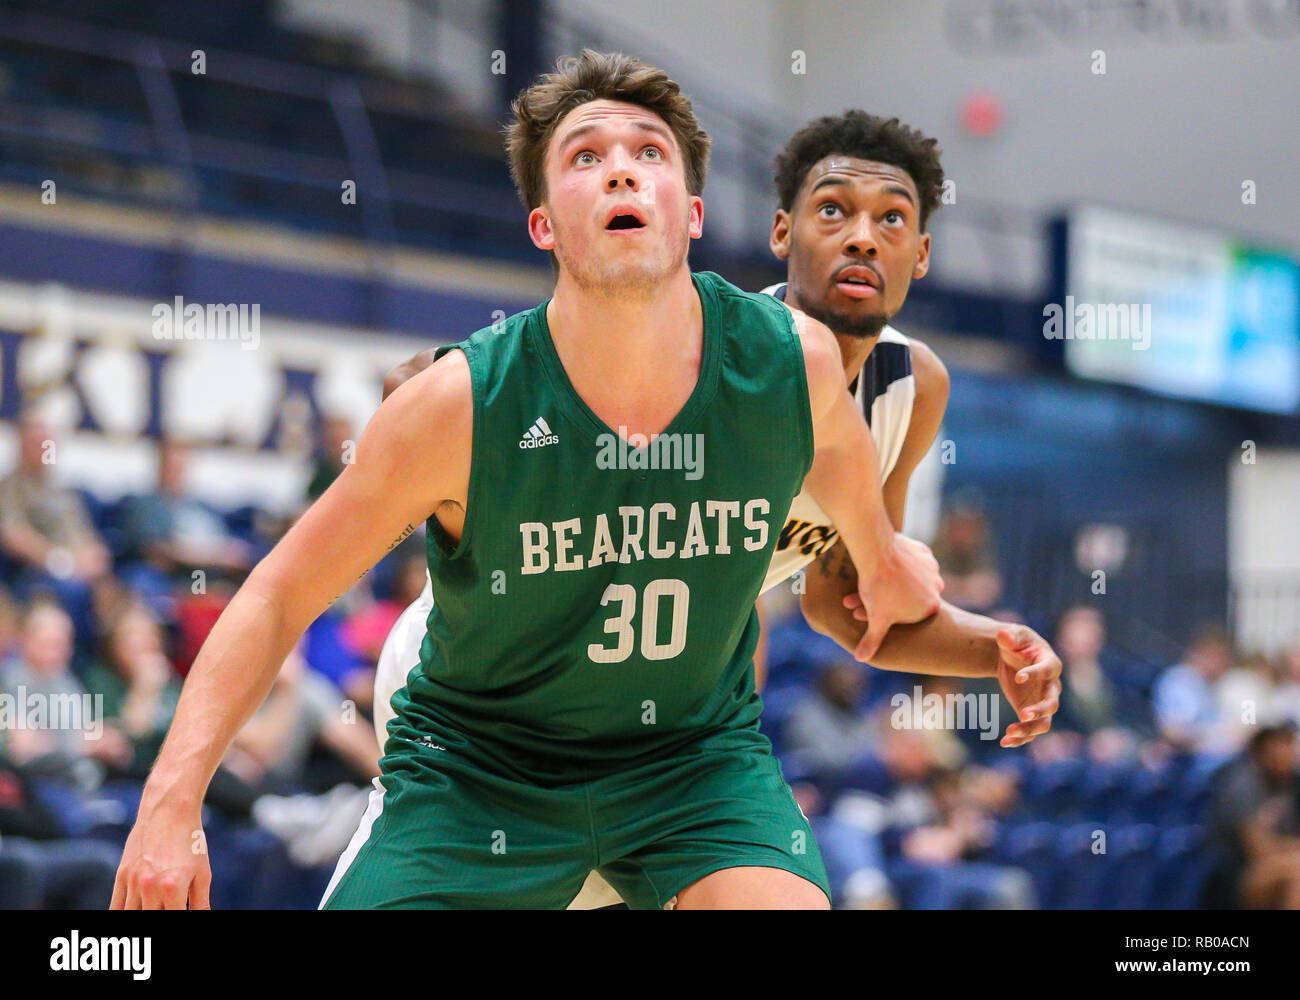 Oklahoma, USA. 5th Jan, 2019. Northwest Missouri Guard Joey Witthus (30) positions himself for a rebound during a basketball game between the Northwest Missouri Bearcats and the Central Oklahoma Bronchos at Hamilton Field House in Edmond, OK. Gray Siegel/CSM/Alamy Live News Stock Photo